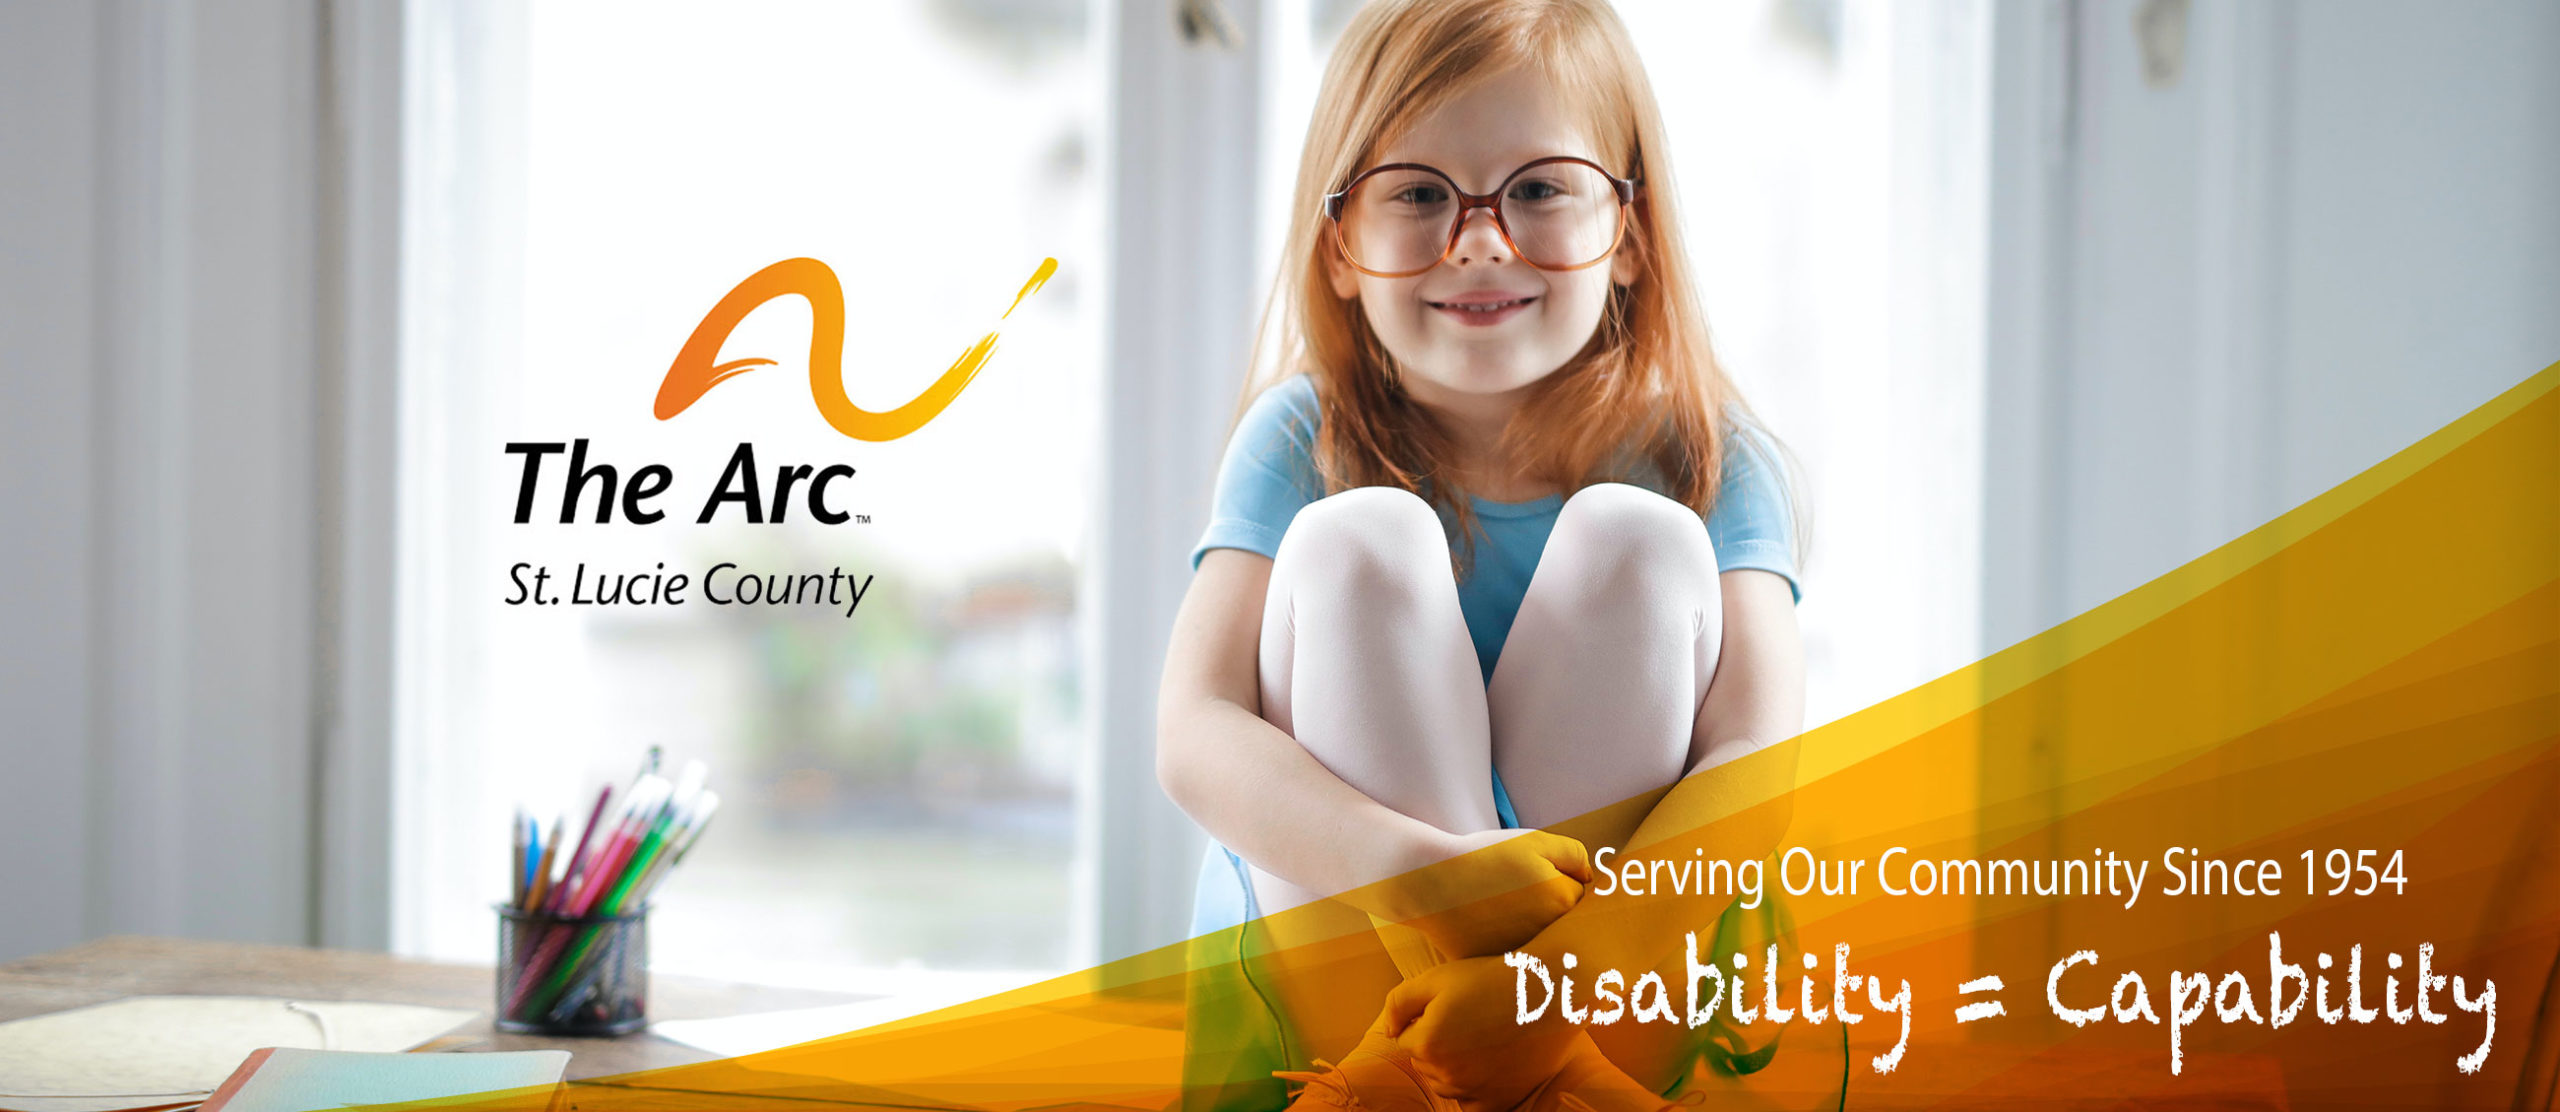 The Arc St Lucie County Disability Equals Capability